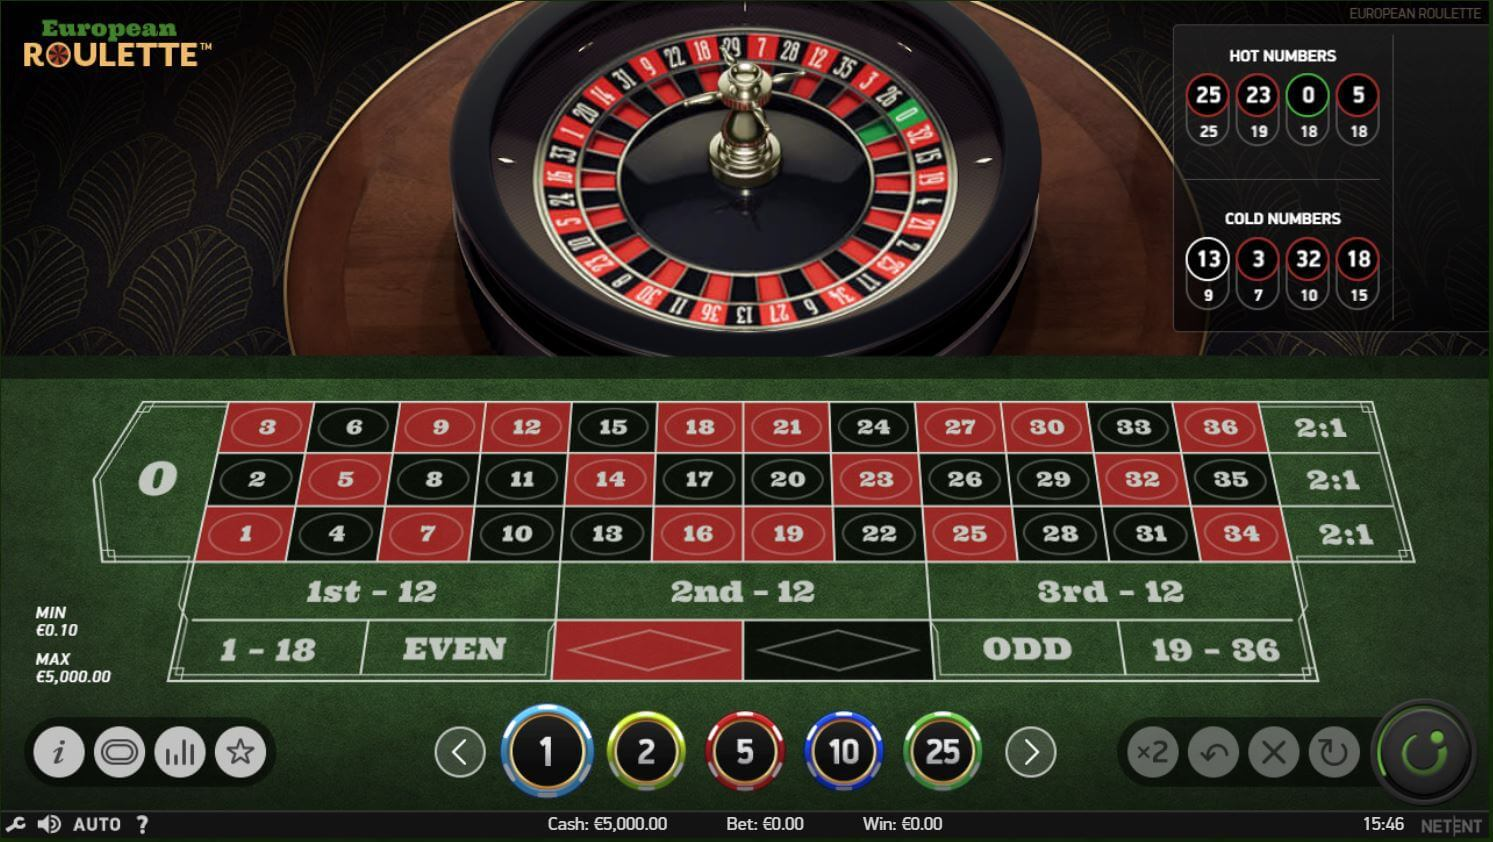 Online Casino Tips: We Can Explain How to Make the Most of Your Games